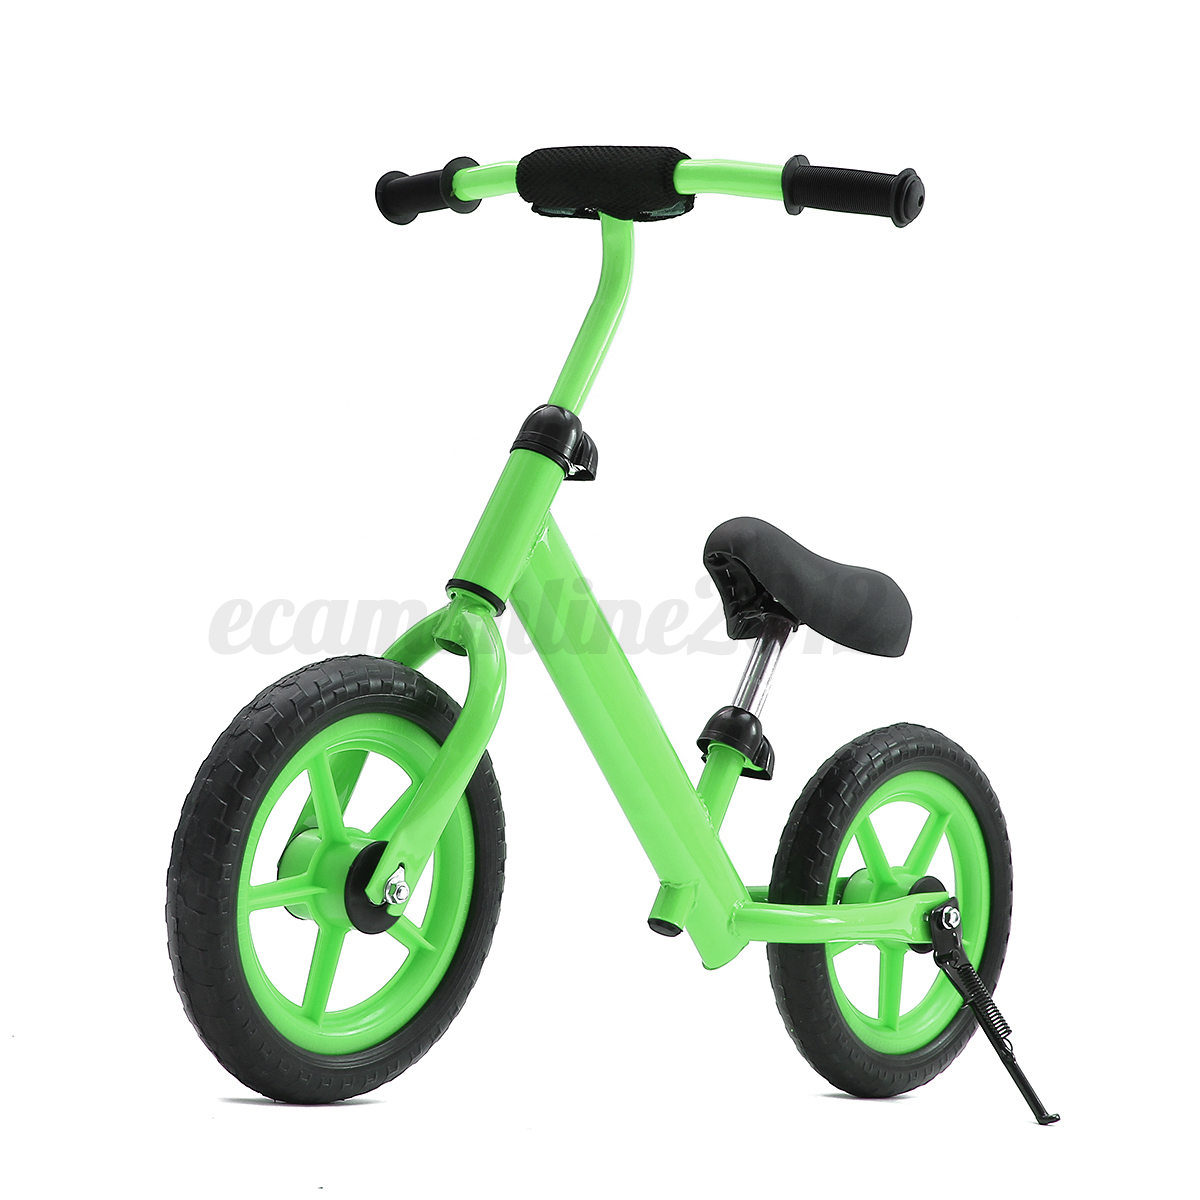 12 Kids Push Balance Bike Bicycle No Pedal Learn To Ride With